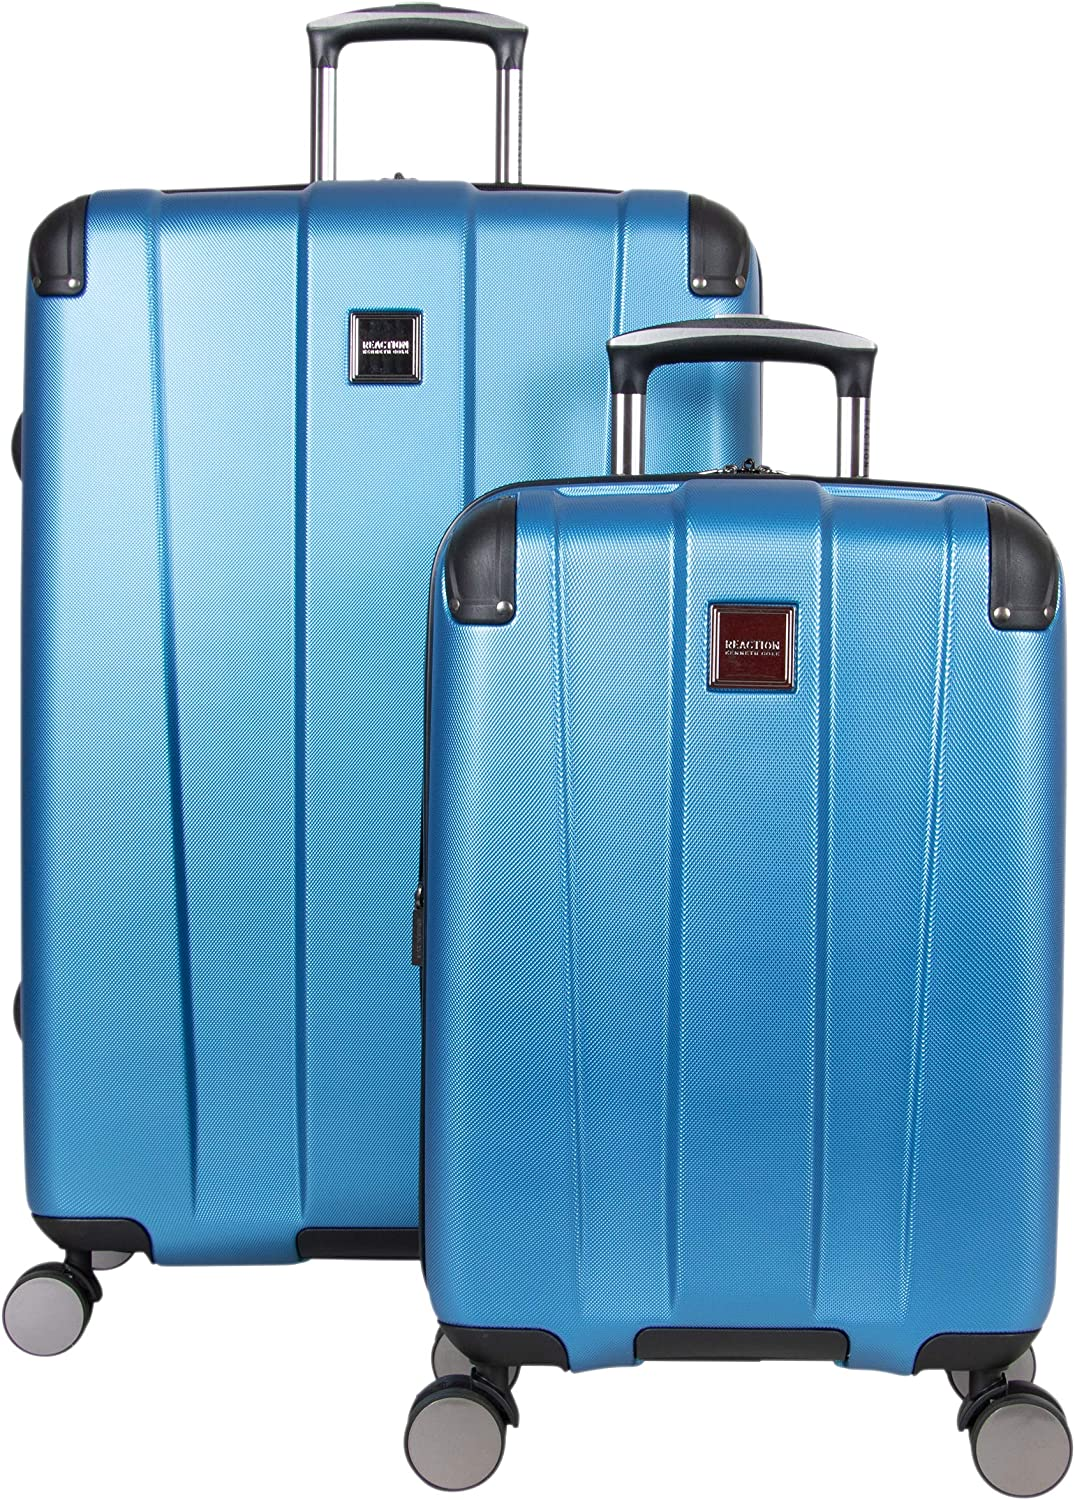 Kenneth Cole Reaction Continuum 2-Piece 20 Carry-On 28 Check Size Lightweight Hardside Expandable 8-Wheel Spinner Travel Luggage Set, Vivid Blue